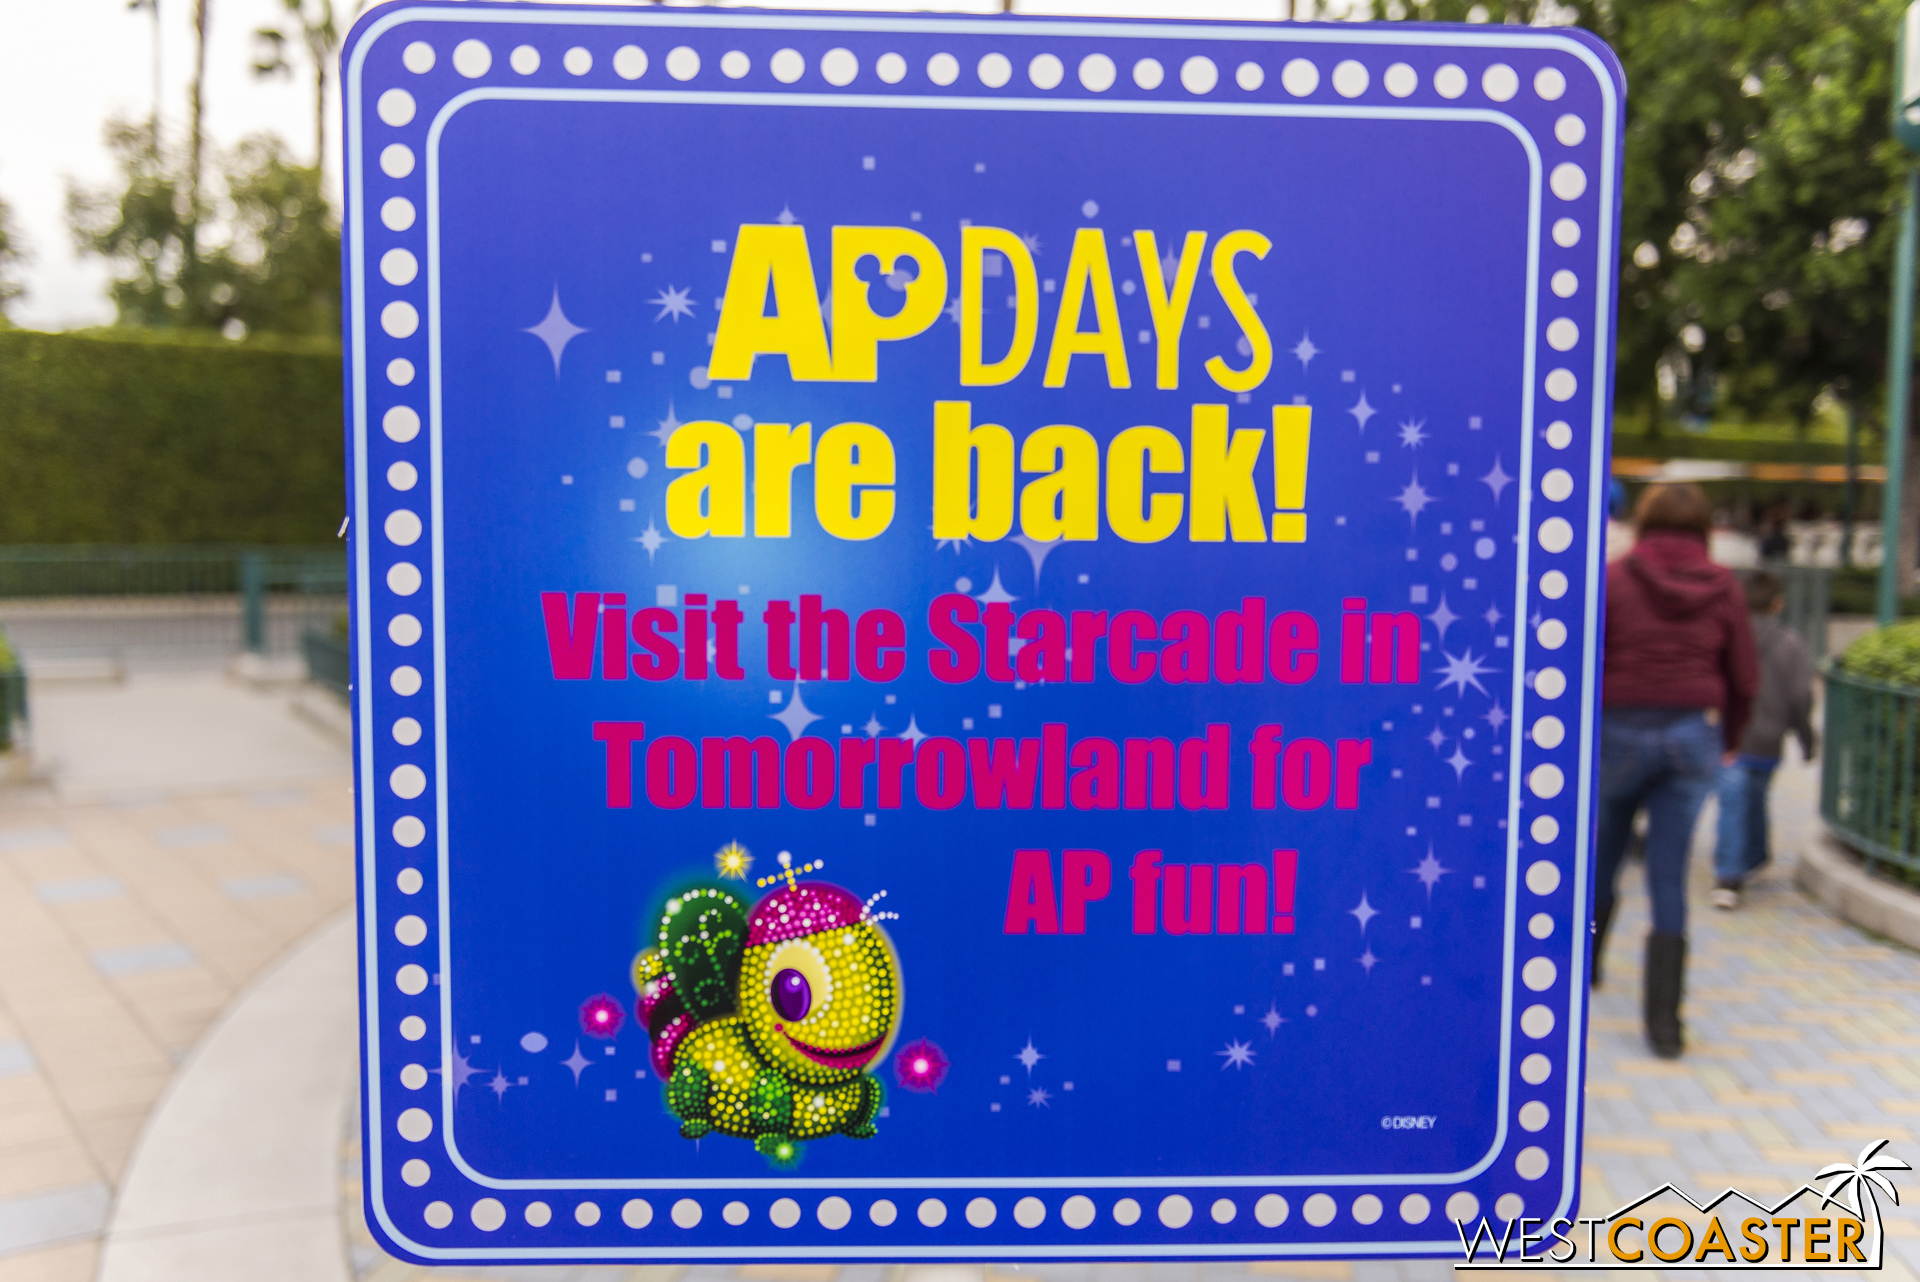 AP Days are back, and they've taken on a Main Street Electrical Parade theme this year.